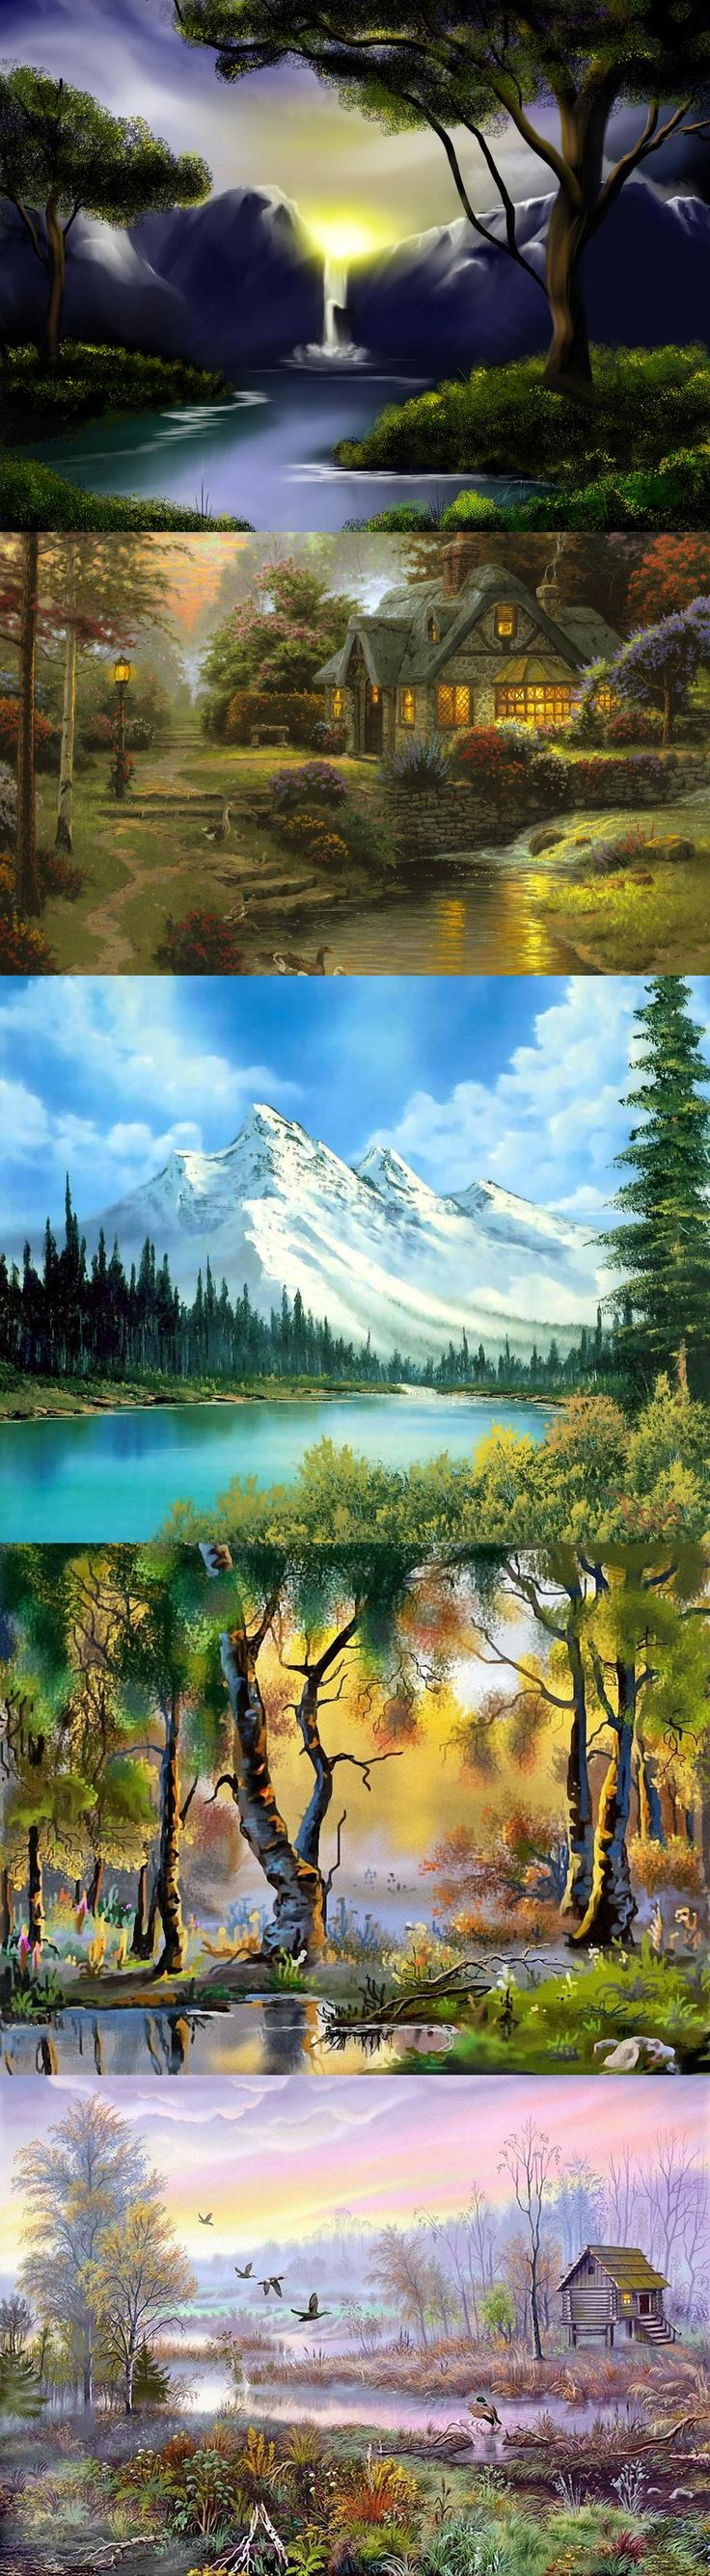 Bob Ross-absolutely loved watching Bob paint. He had the most soothing manner about him.